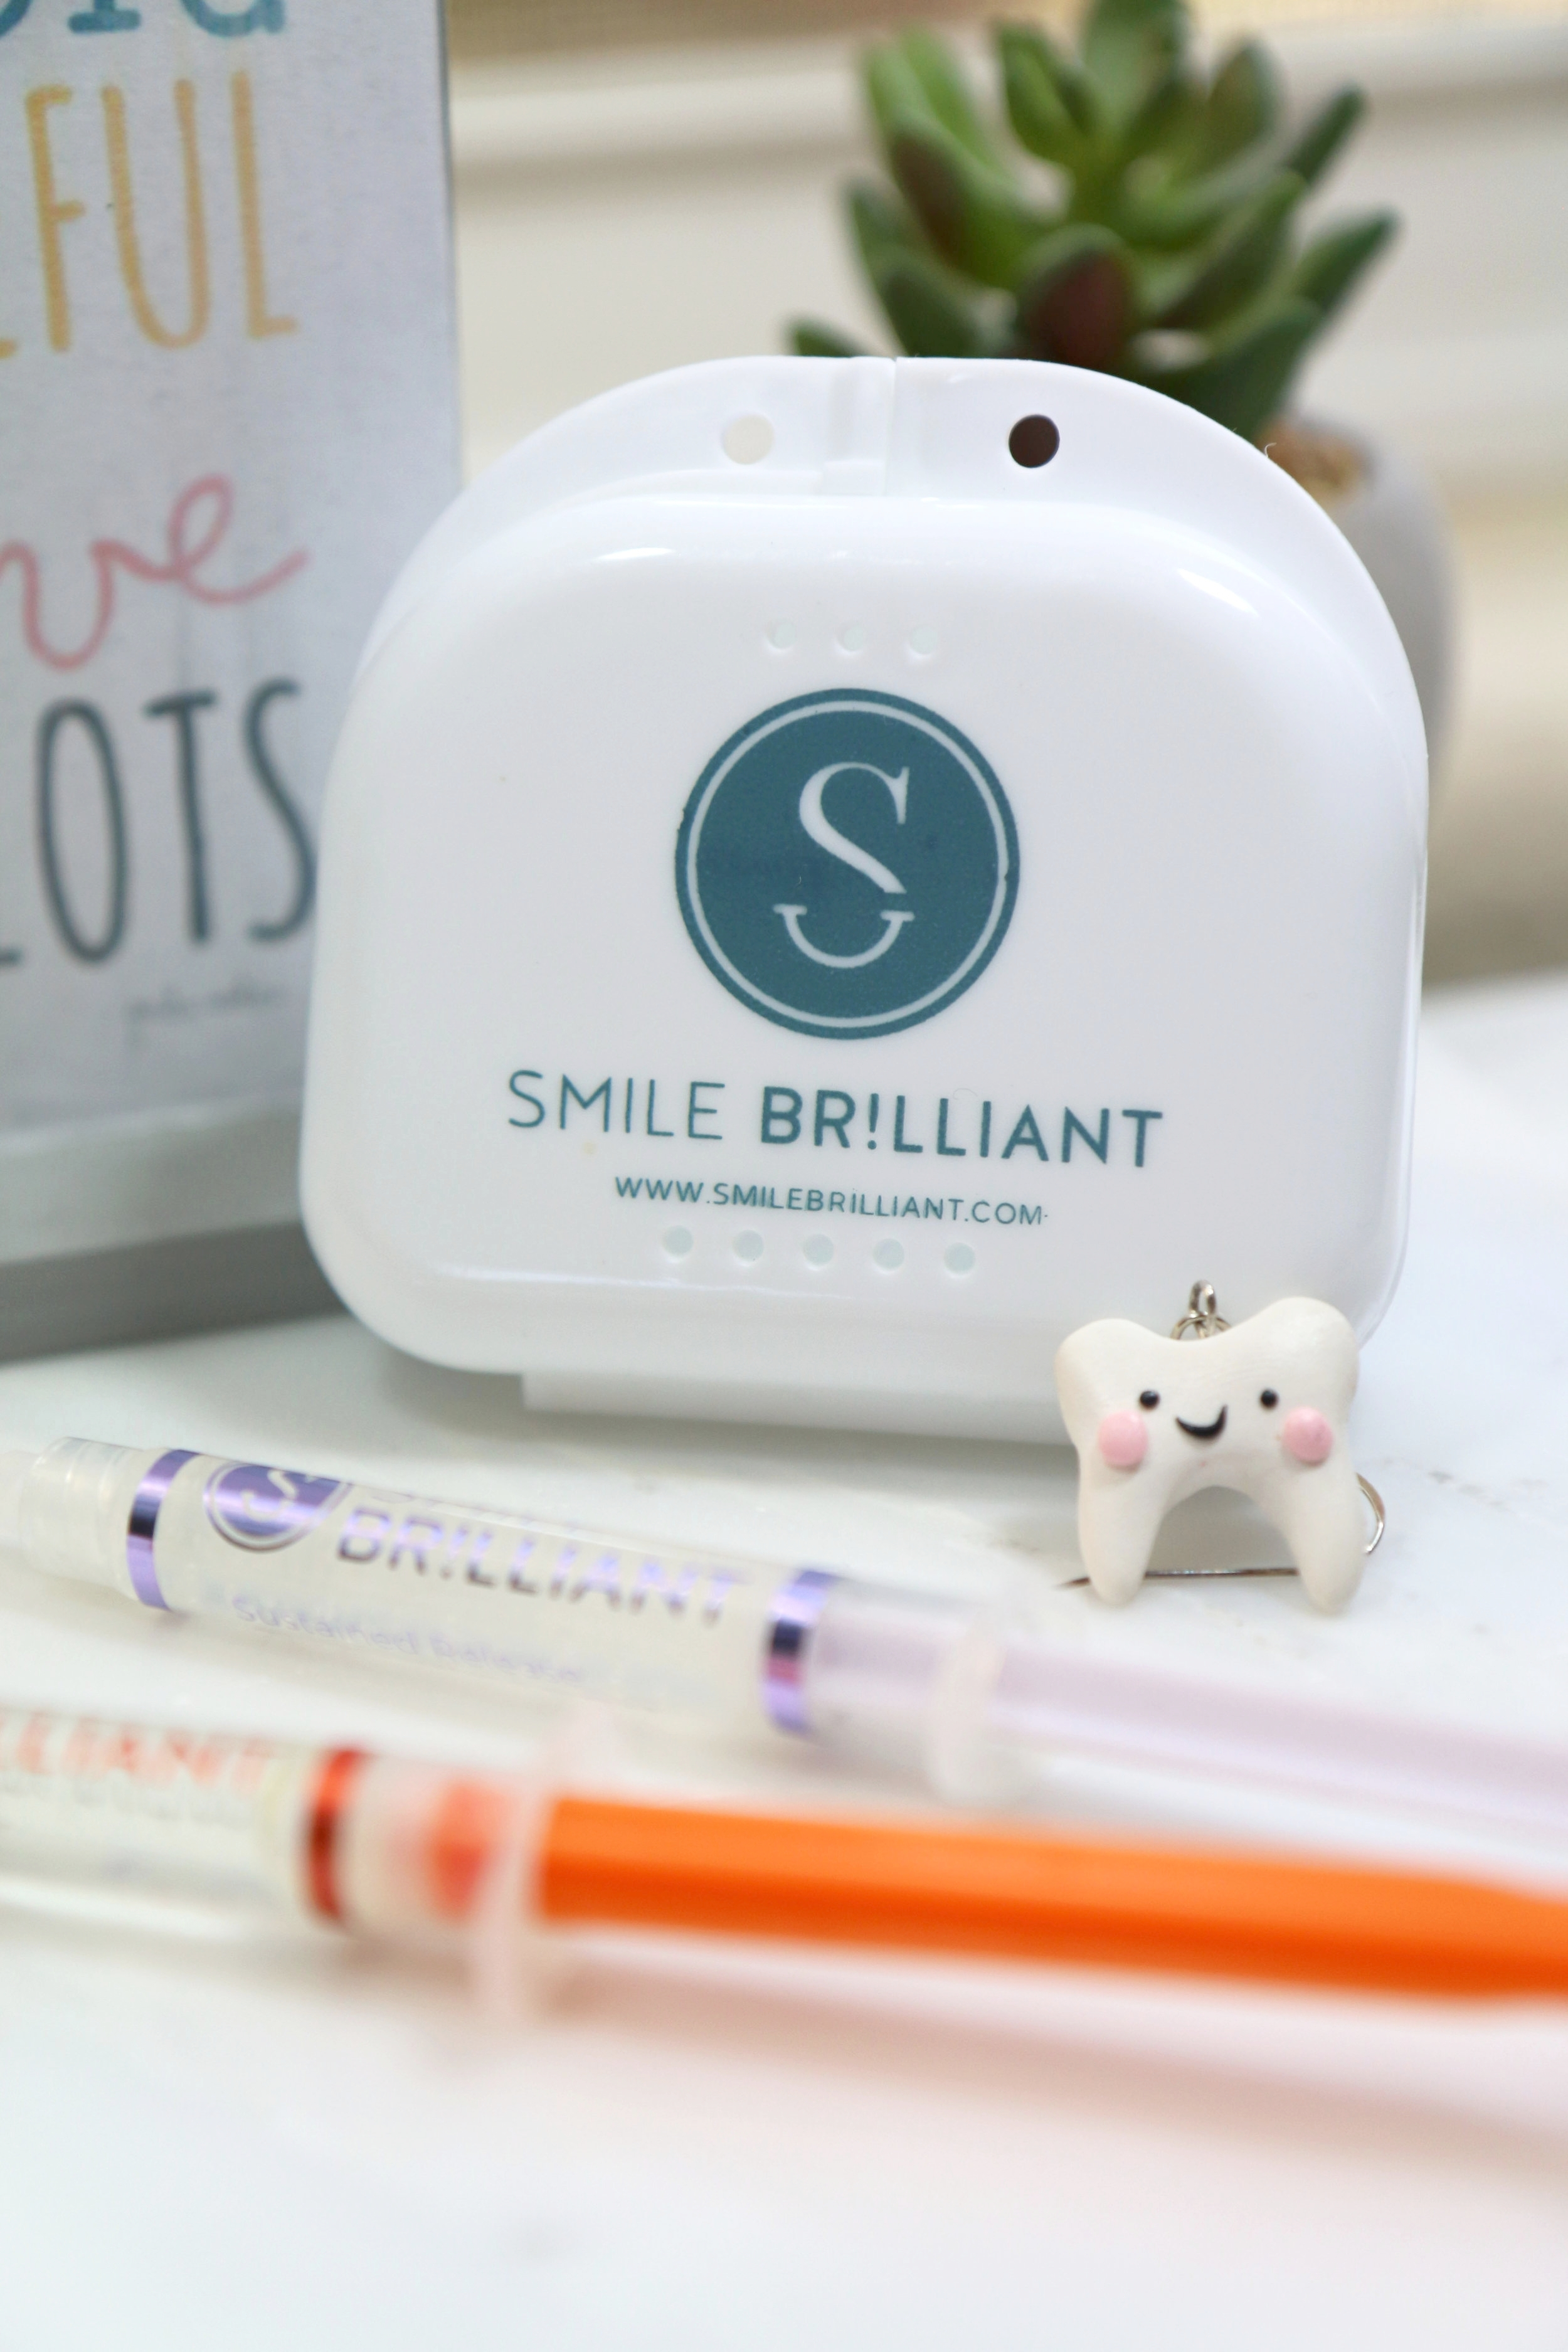 Smile Brilliant at-home Teeth Whitening